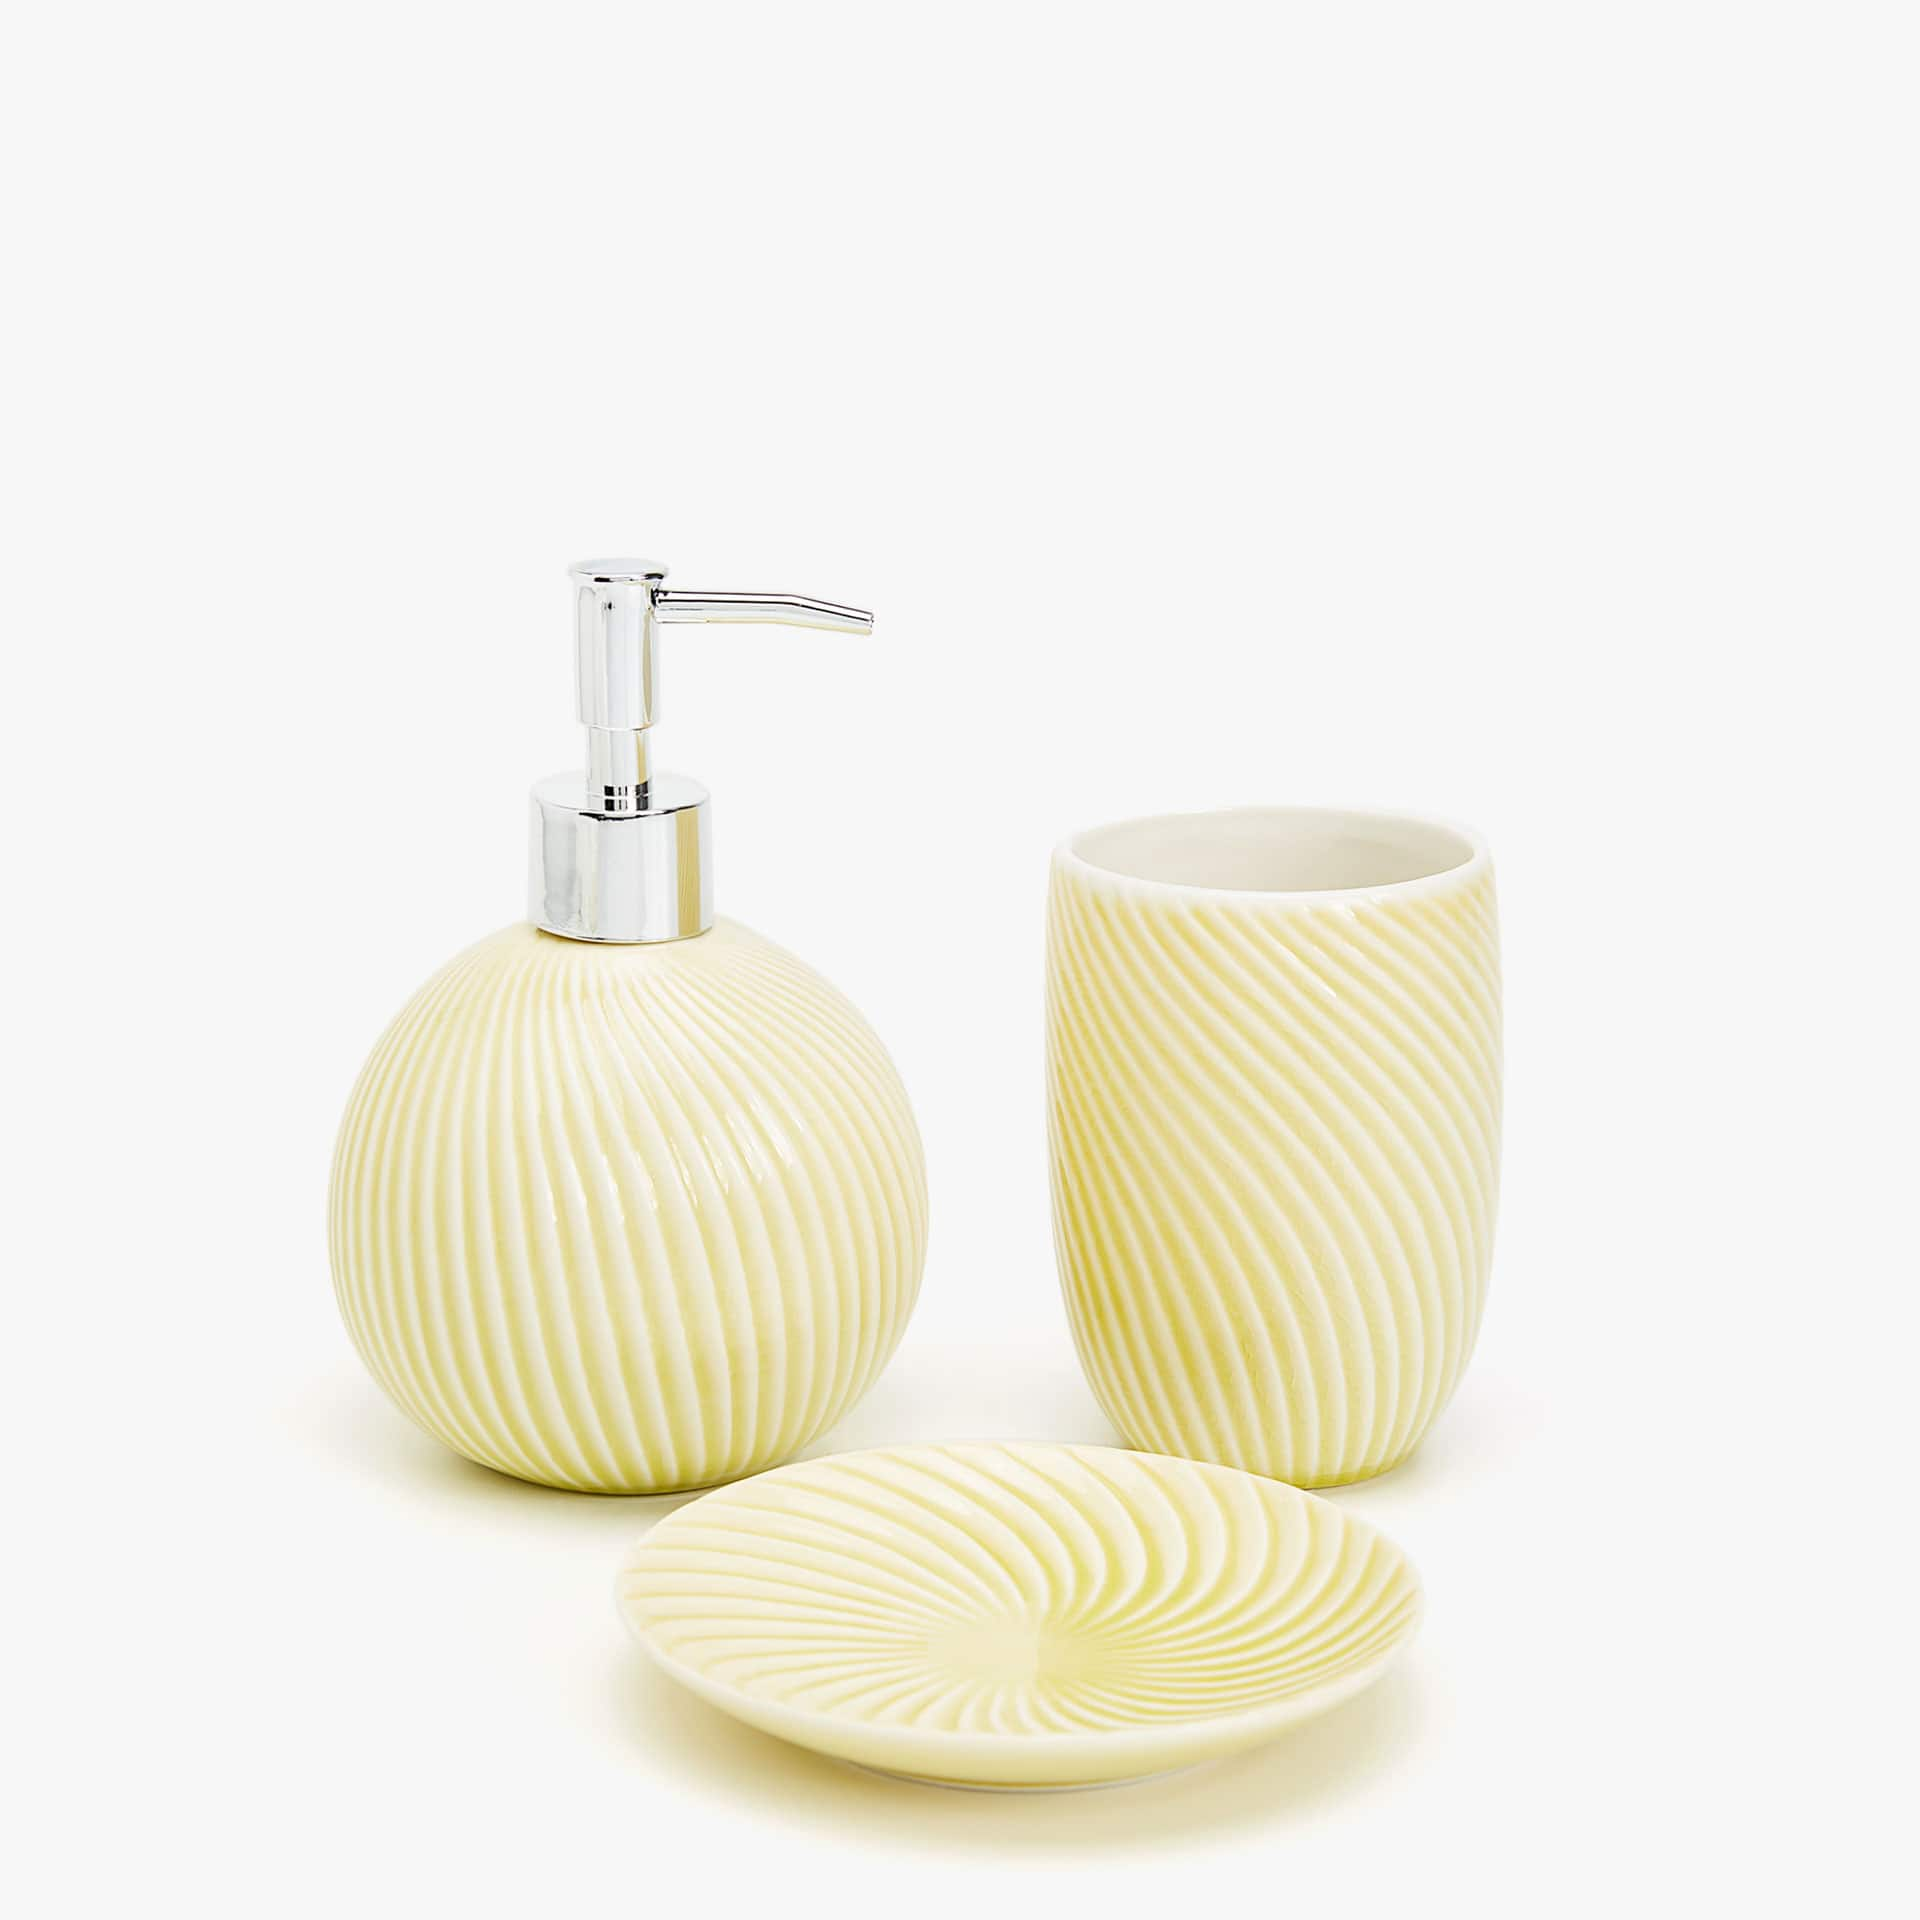 + Mustard Yellow Bathroom Set With Stripes